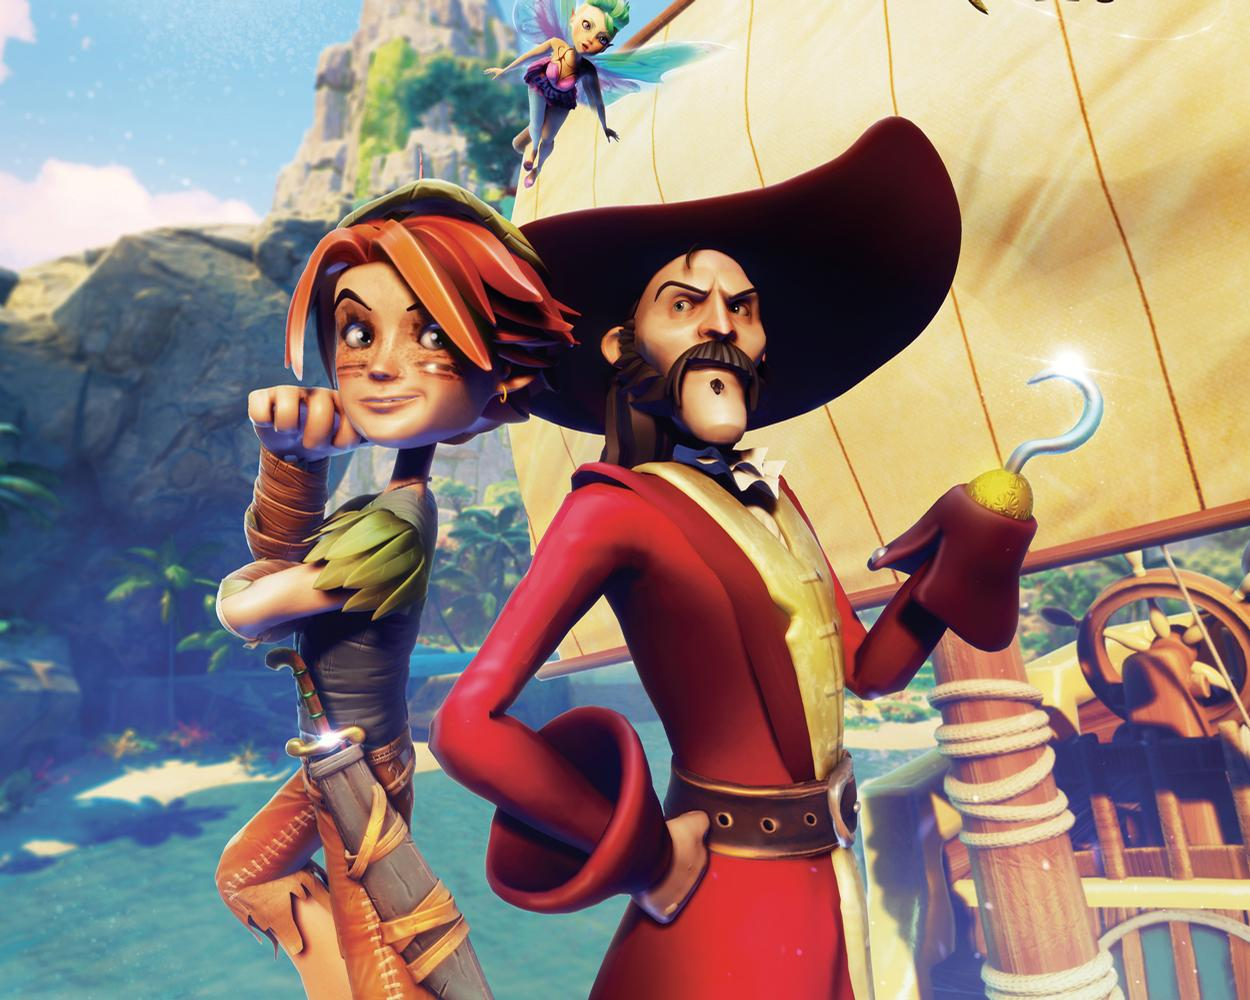 Peter Pan – Saving Tinkerbell is a CGI ride film that reinterprets the much-loved classic for the attractions industry